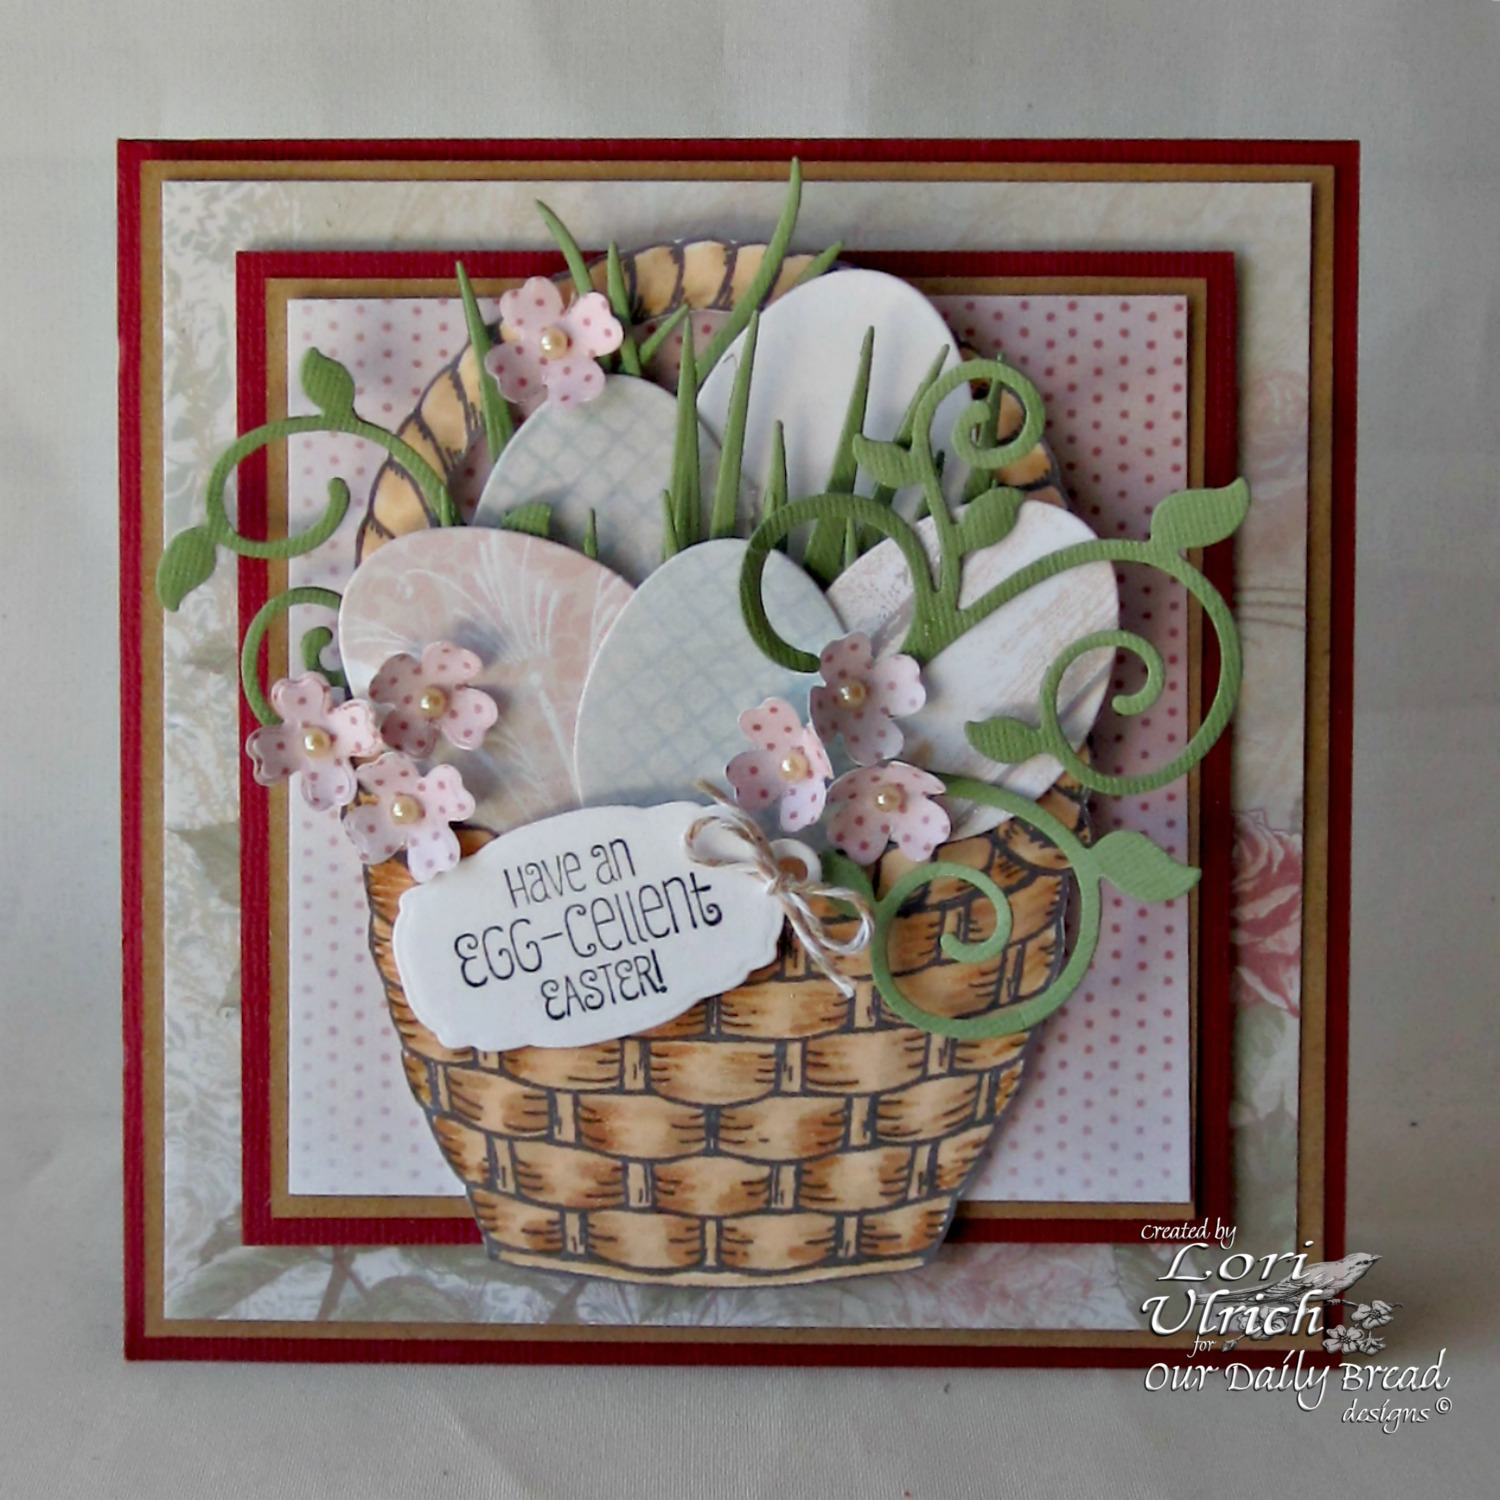 Stamps - Our Daily Bread Designs Basket of Blessings, ODBD Custom Mini Tags Dies, ODBD Custom Fancy Foliage Dies, ODBD Custom Ornamental Crosses Die, ODBD Custom Eggs Dies, ODBD Shabby Rose Paper Collection